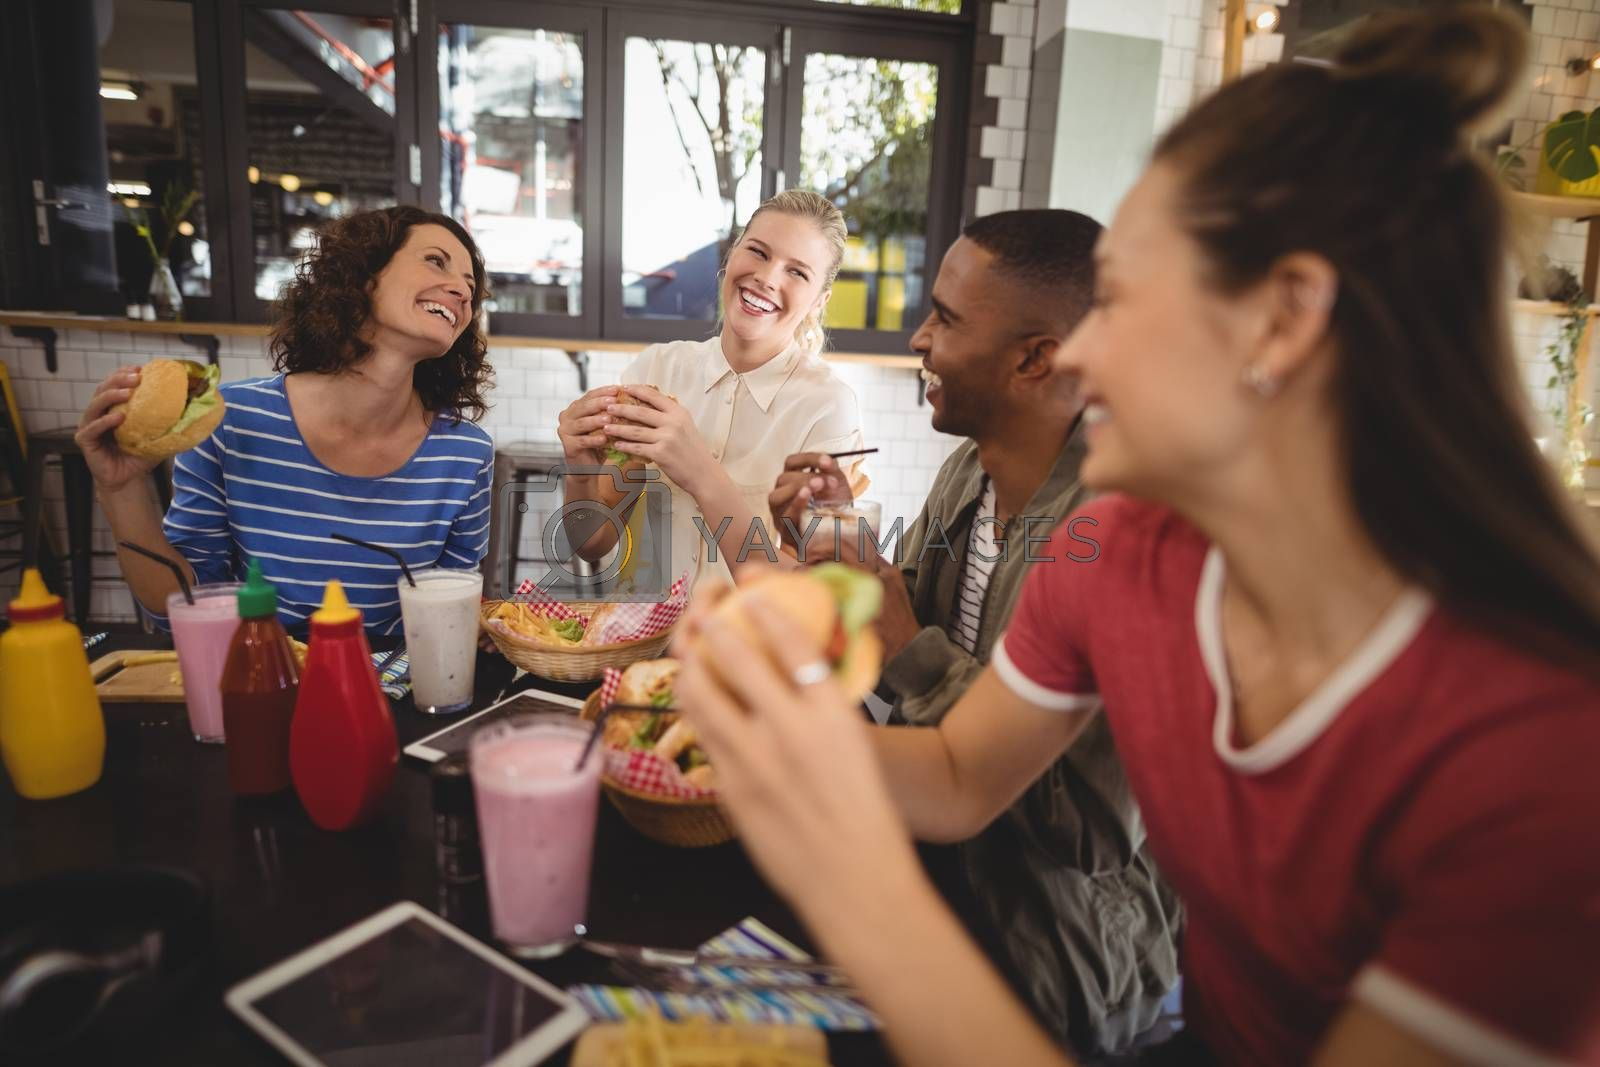 Cheerful young friends sitting with food and drink at table in coffee shop